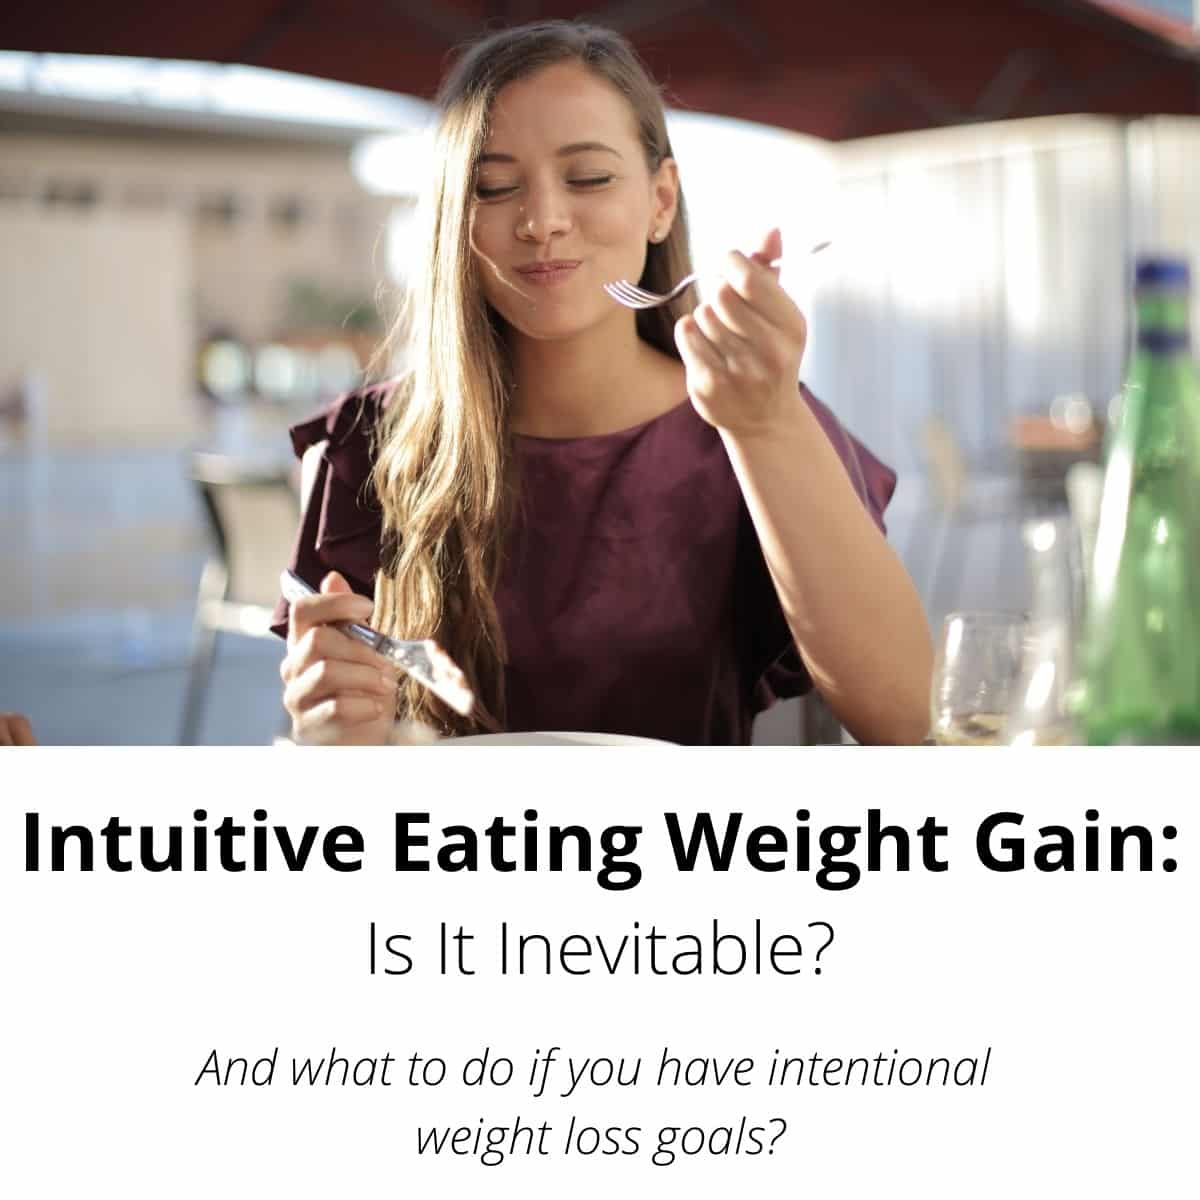 Intuitive Eating Weight Gain Is It Inevitable